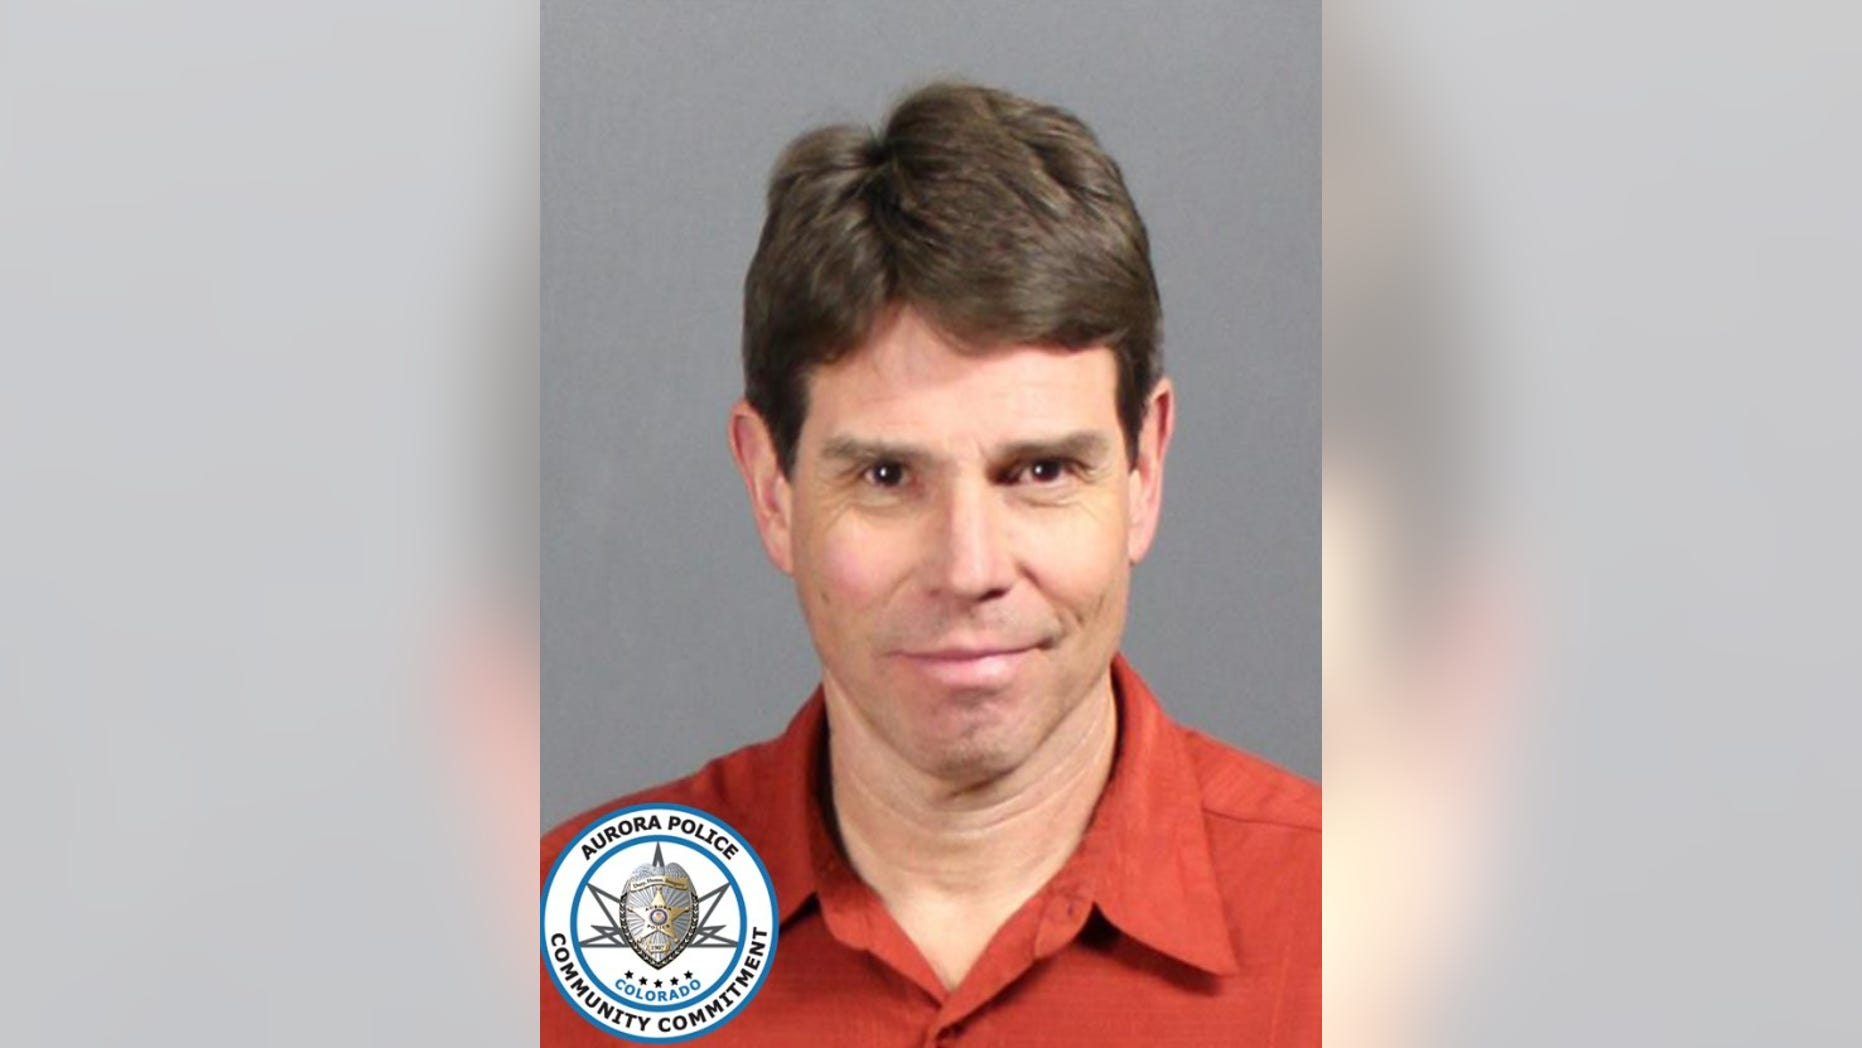 Fredrick Blue Manzanares, 50, was arrested last month after police allege he had sexual intercourse with his dog, Bubba.